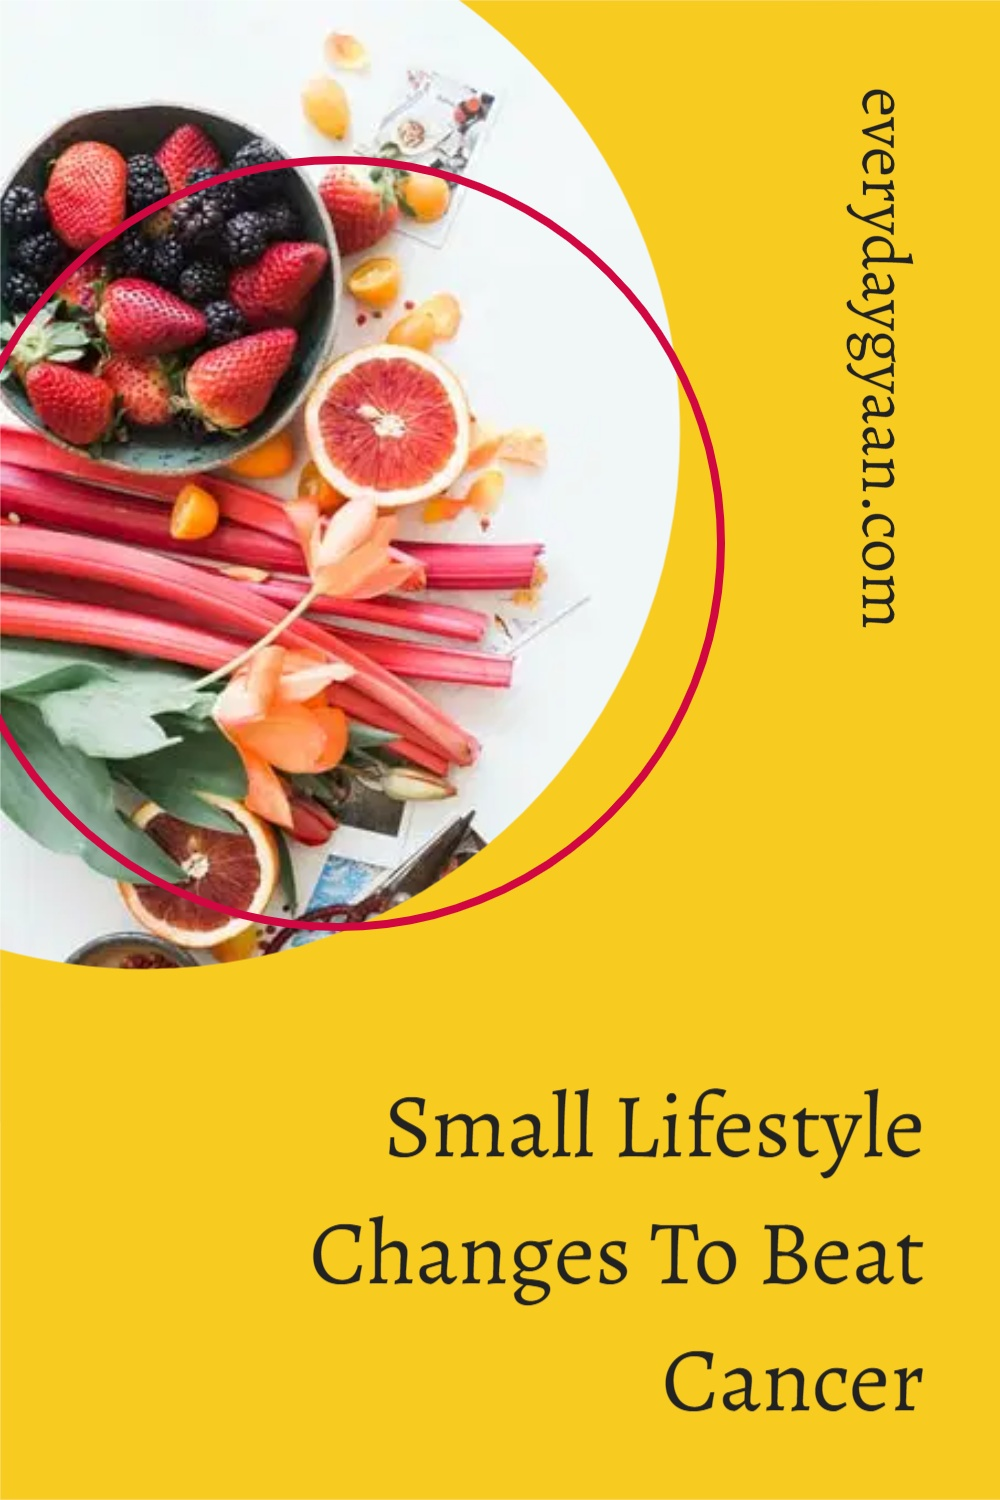 Small Lifestyle Changes To Beat Cancer